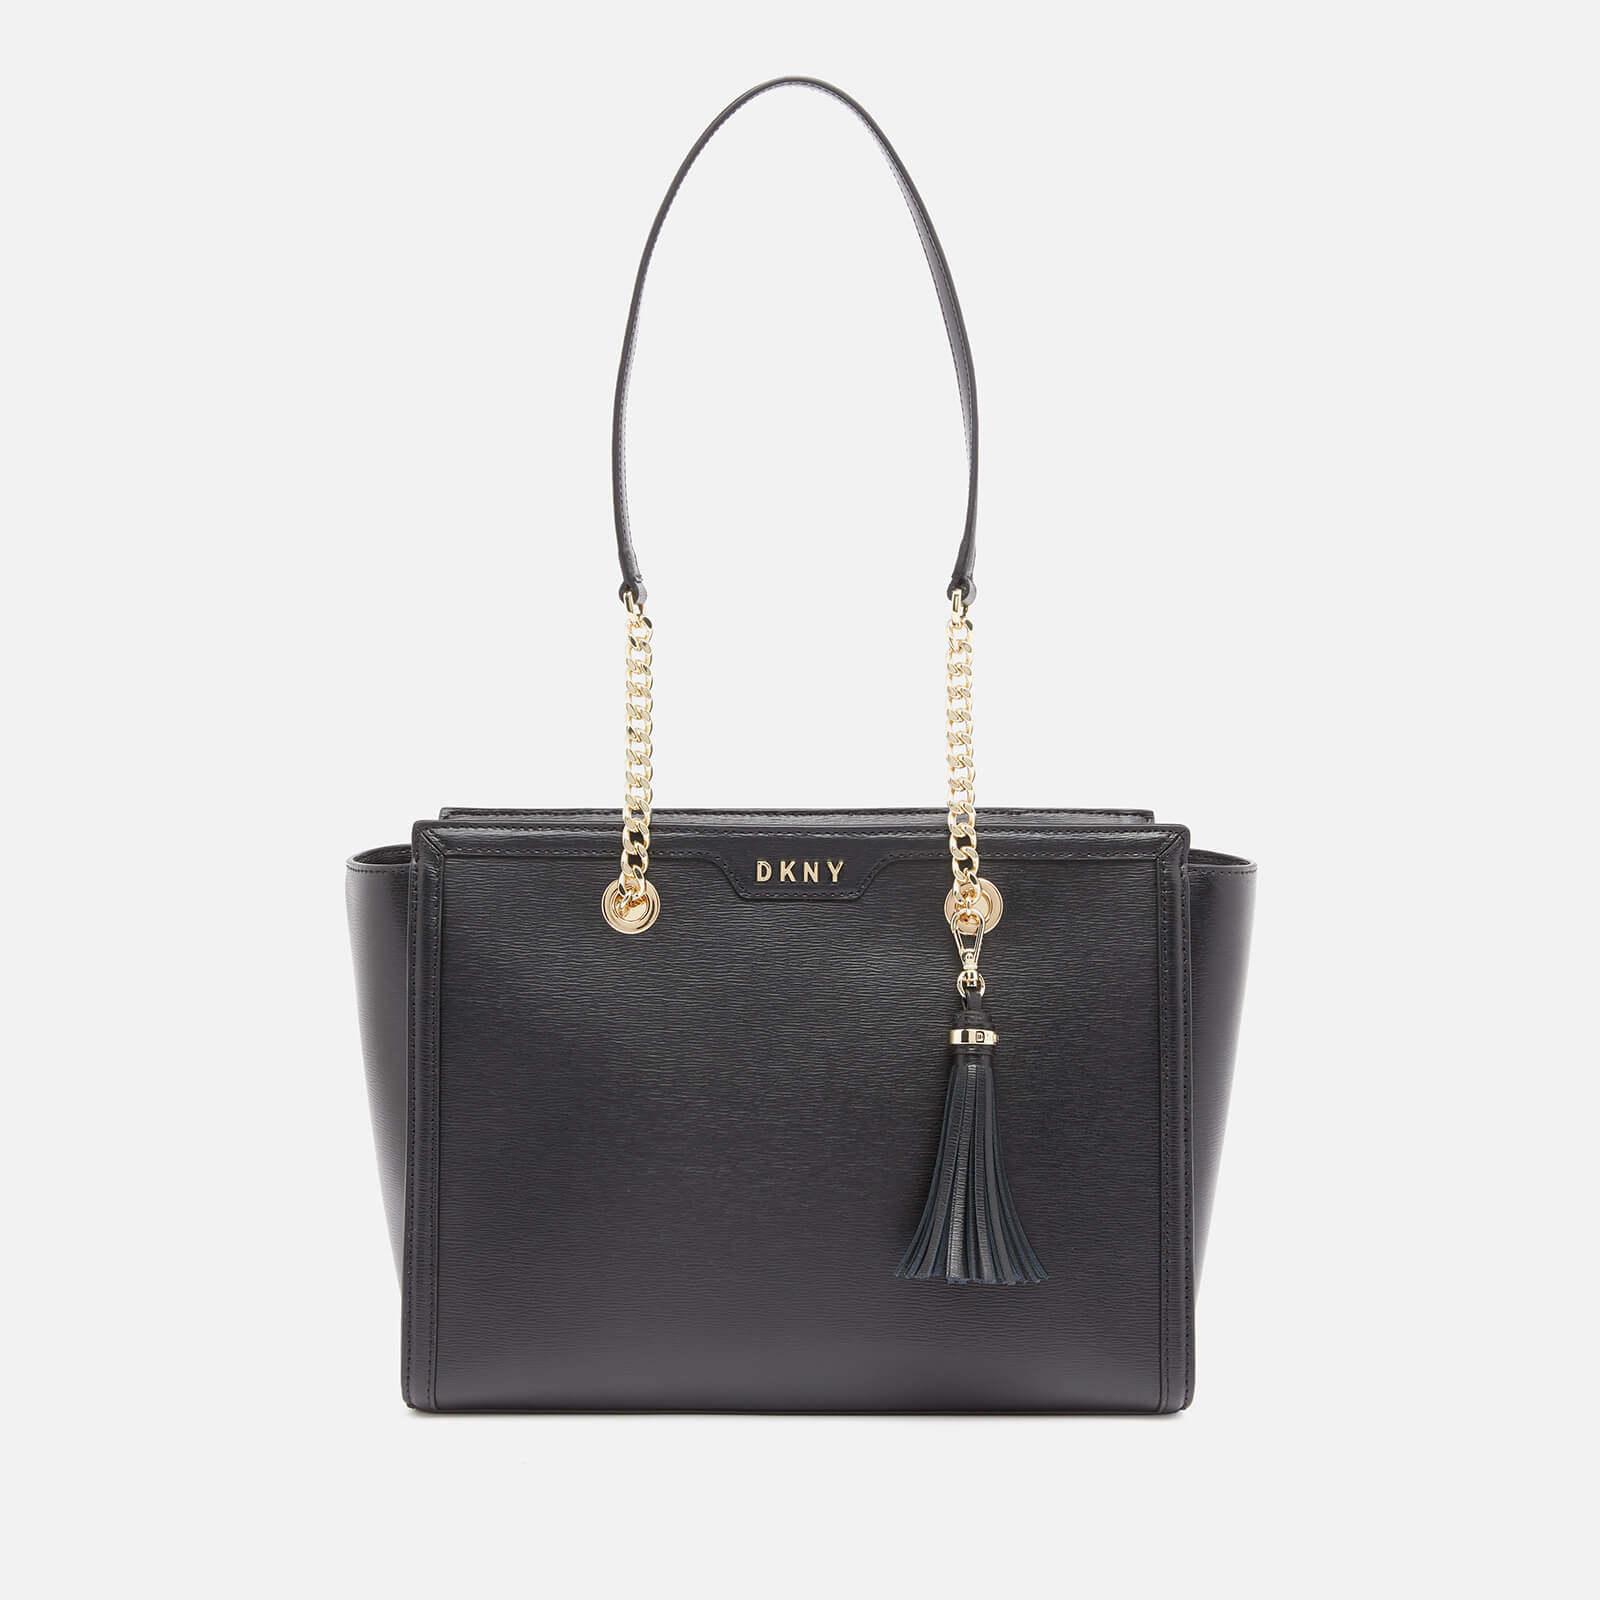 Dkny Women's Polly Sutton Tote Bag - Black/Gold Bgd